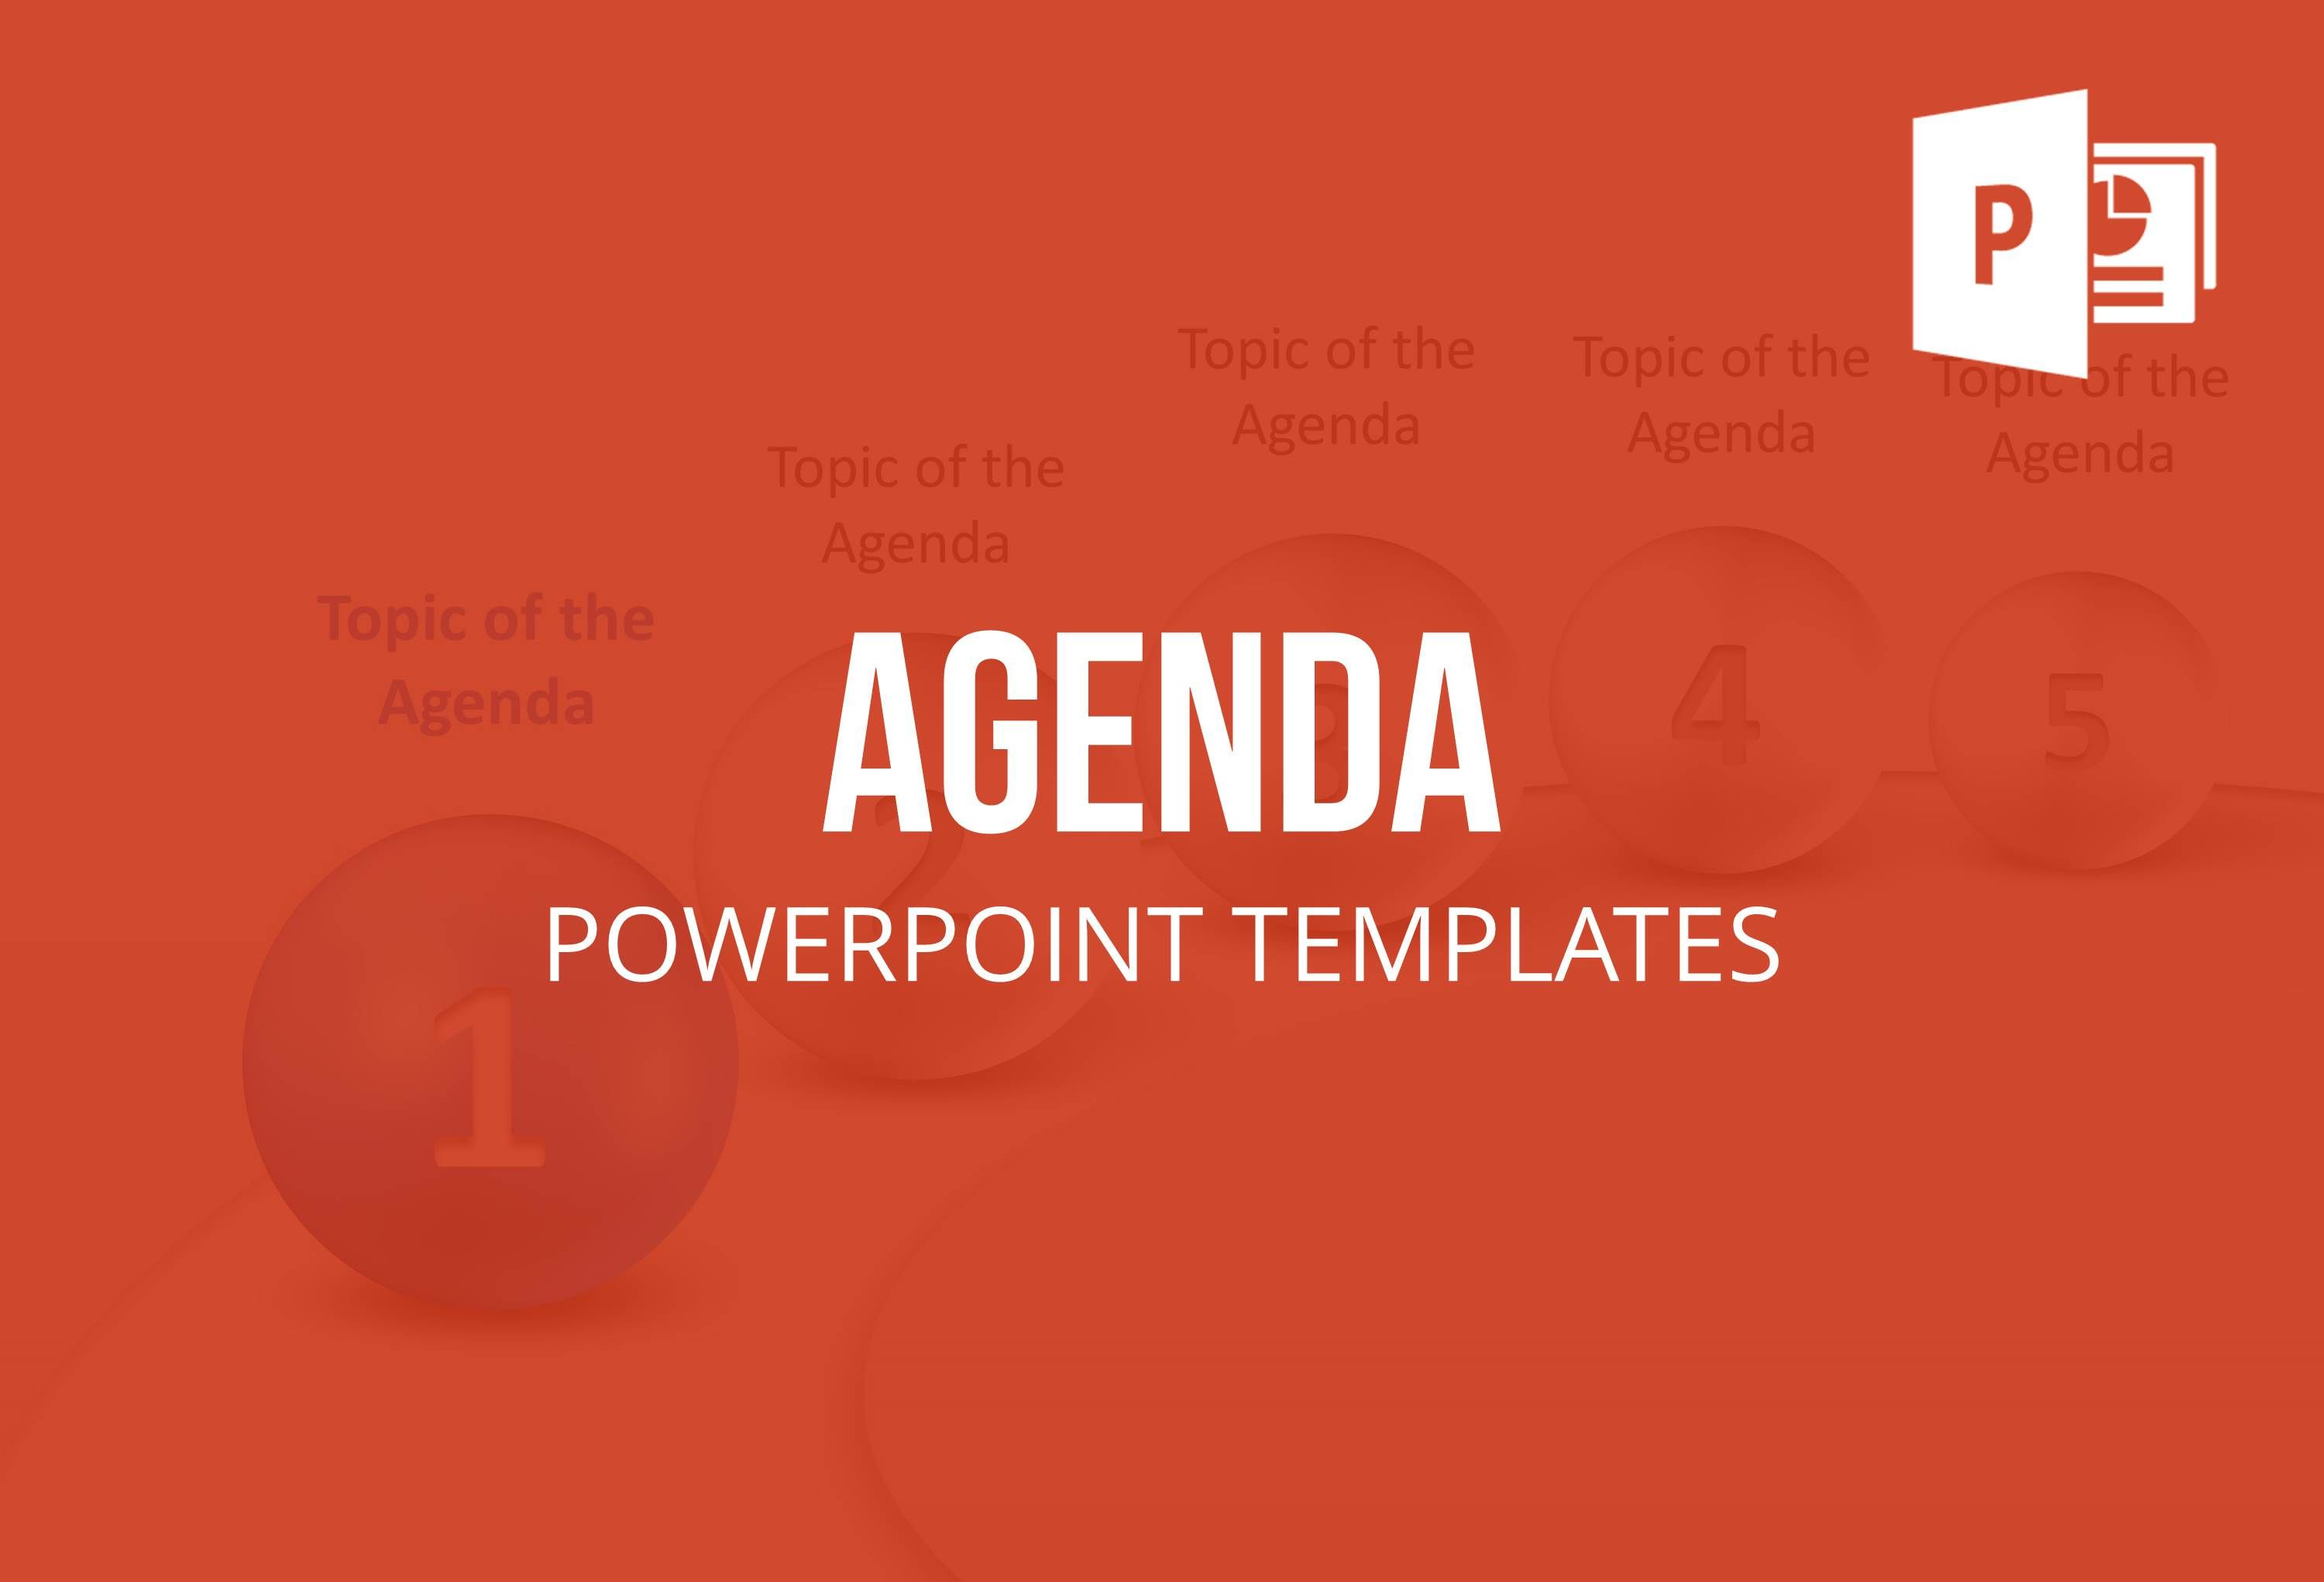 Save Time By Using These Agenda Templates For Powerpoint To Create